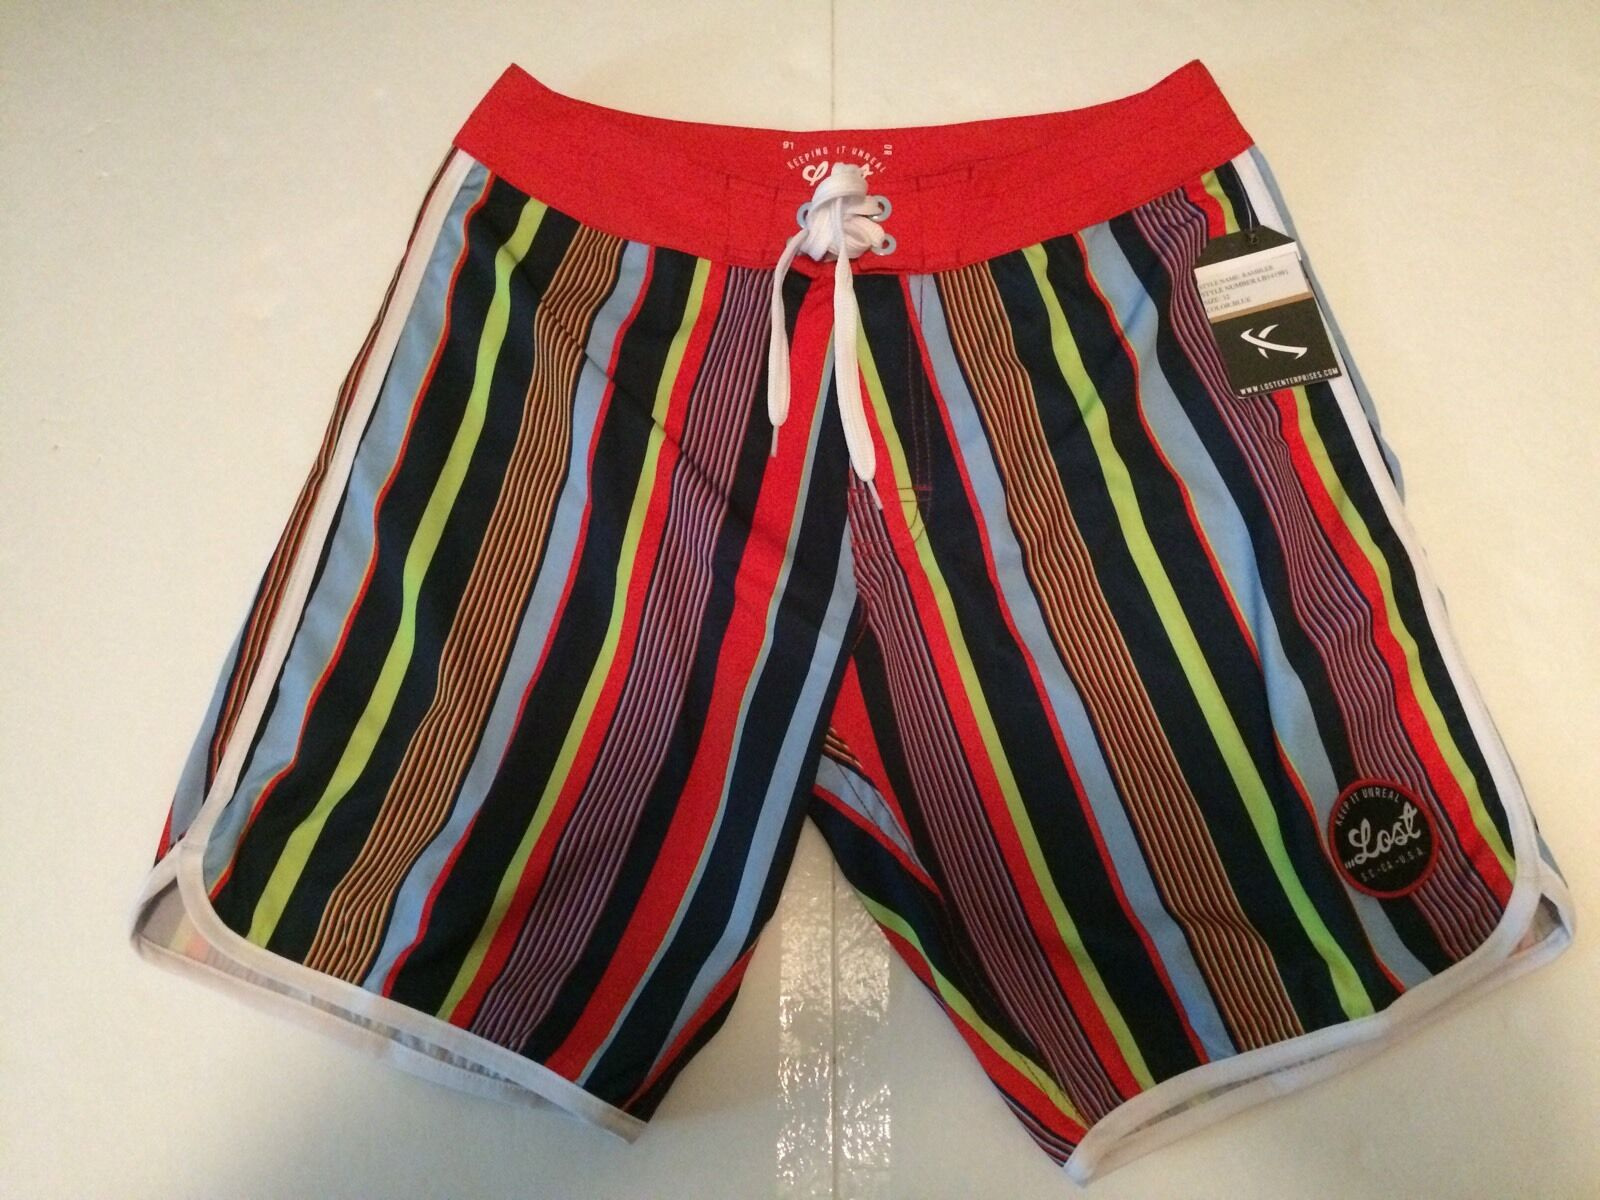 LOST ENTERPRISES BOARDSHORTS KEEP IT UNREAL ART COLLECTION 4 Way Strecth SIZE 32